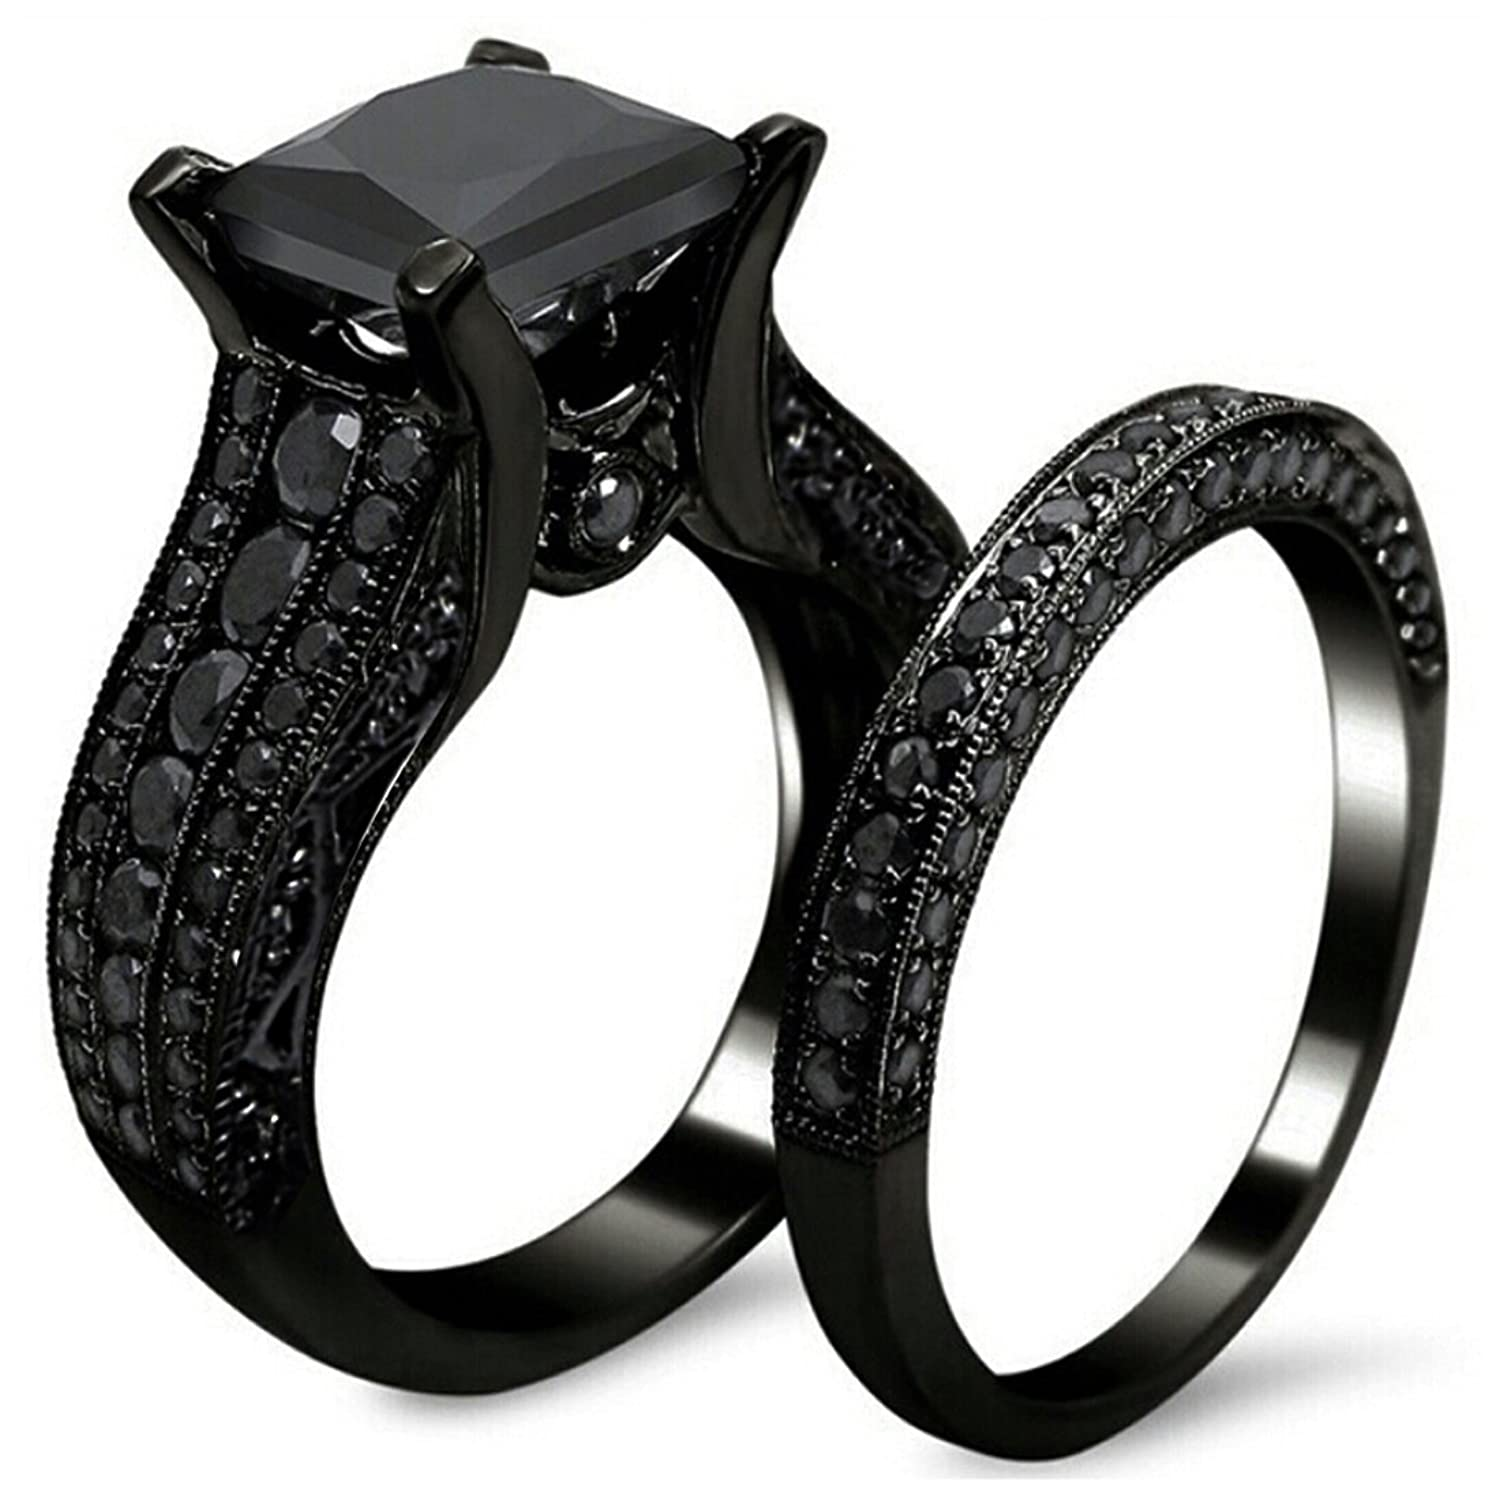 Black Gold Sapphire Princess Cut CZ Wedding Engagement Band Bridal Rings Jewelry Set